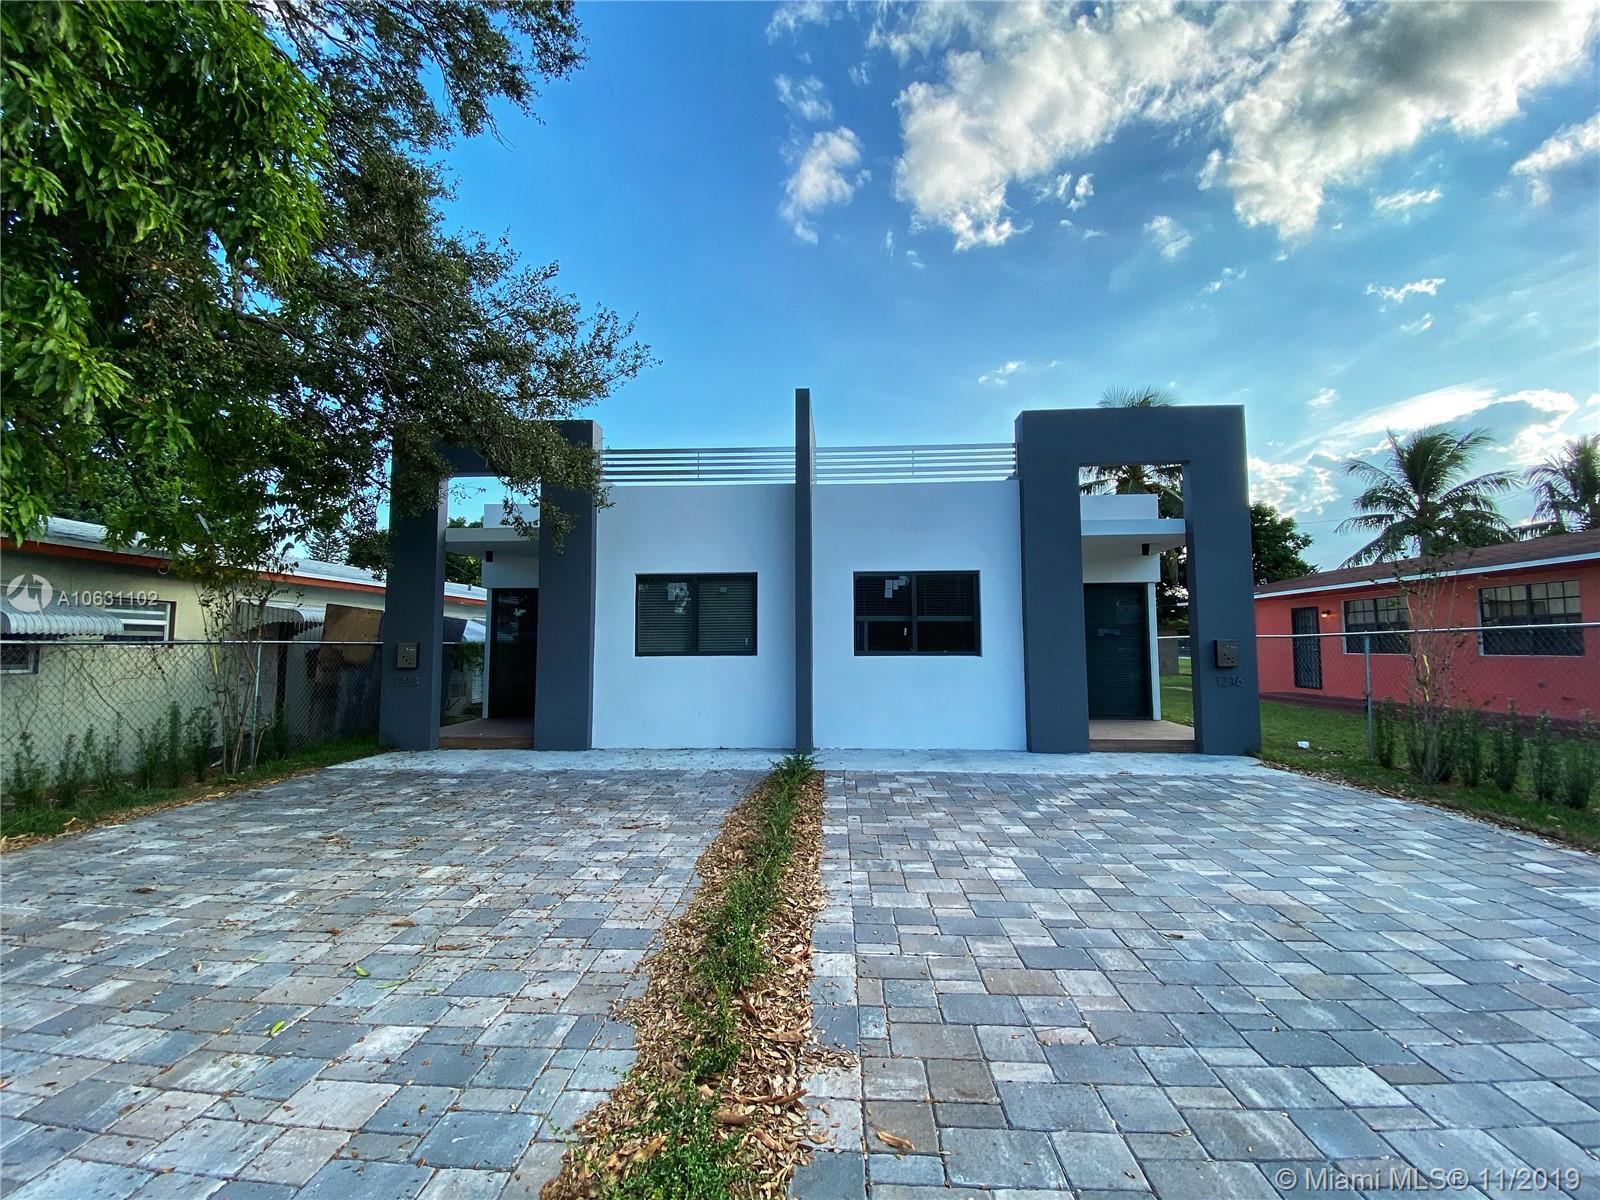 1218-1216 NE 112 ST, one of homes for sale in Miami Shores